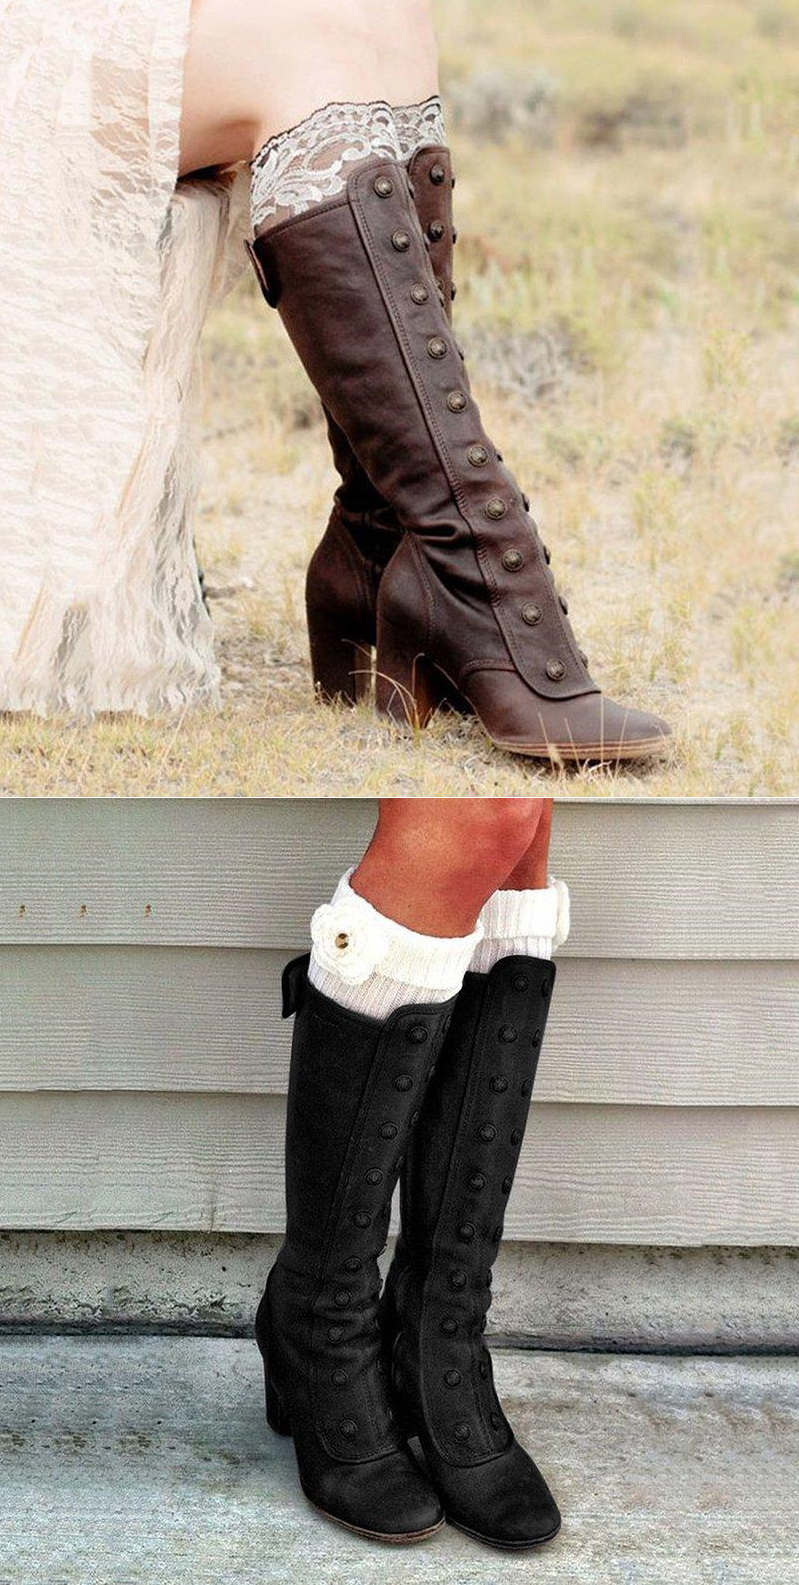 03e83a6894  56.99 USD Sale! Free Shipping! Shop Now! Women Vintage Medieval Boots  Retro Cosplay